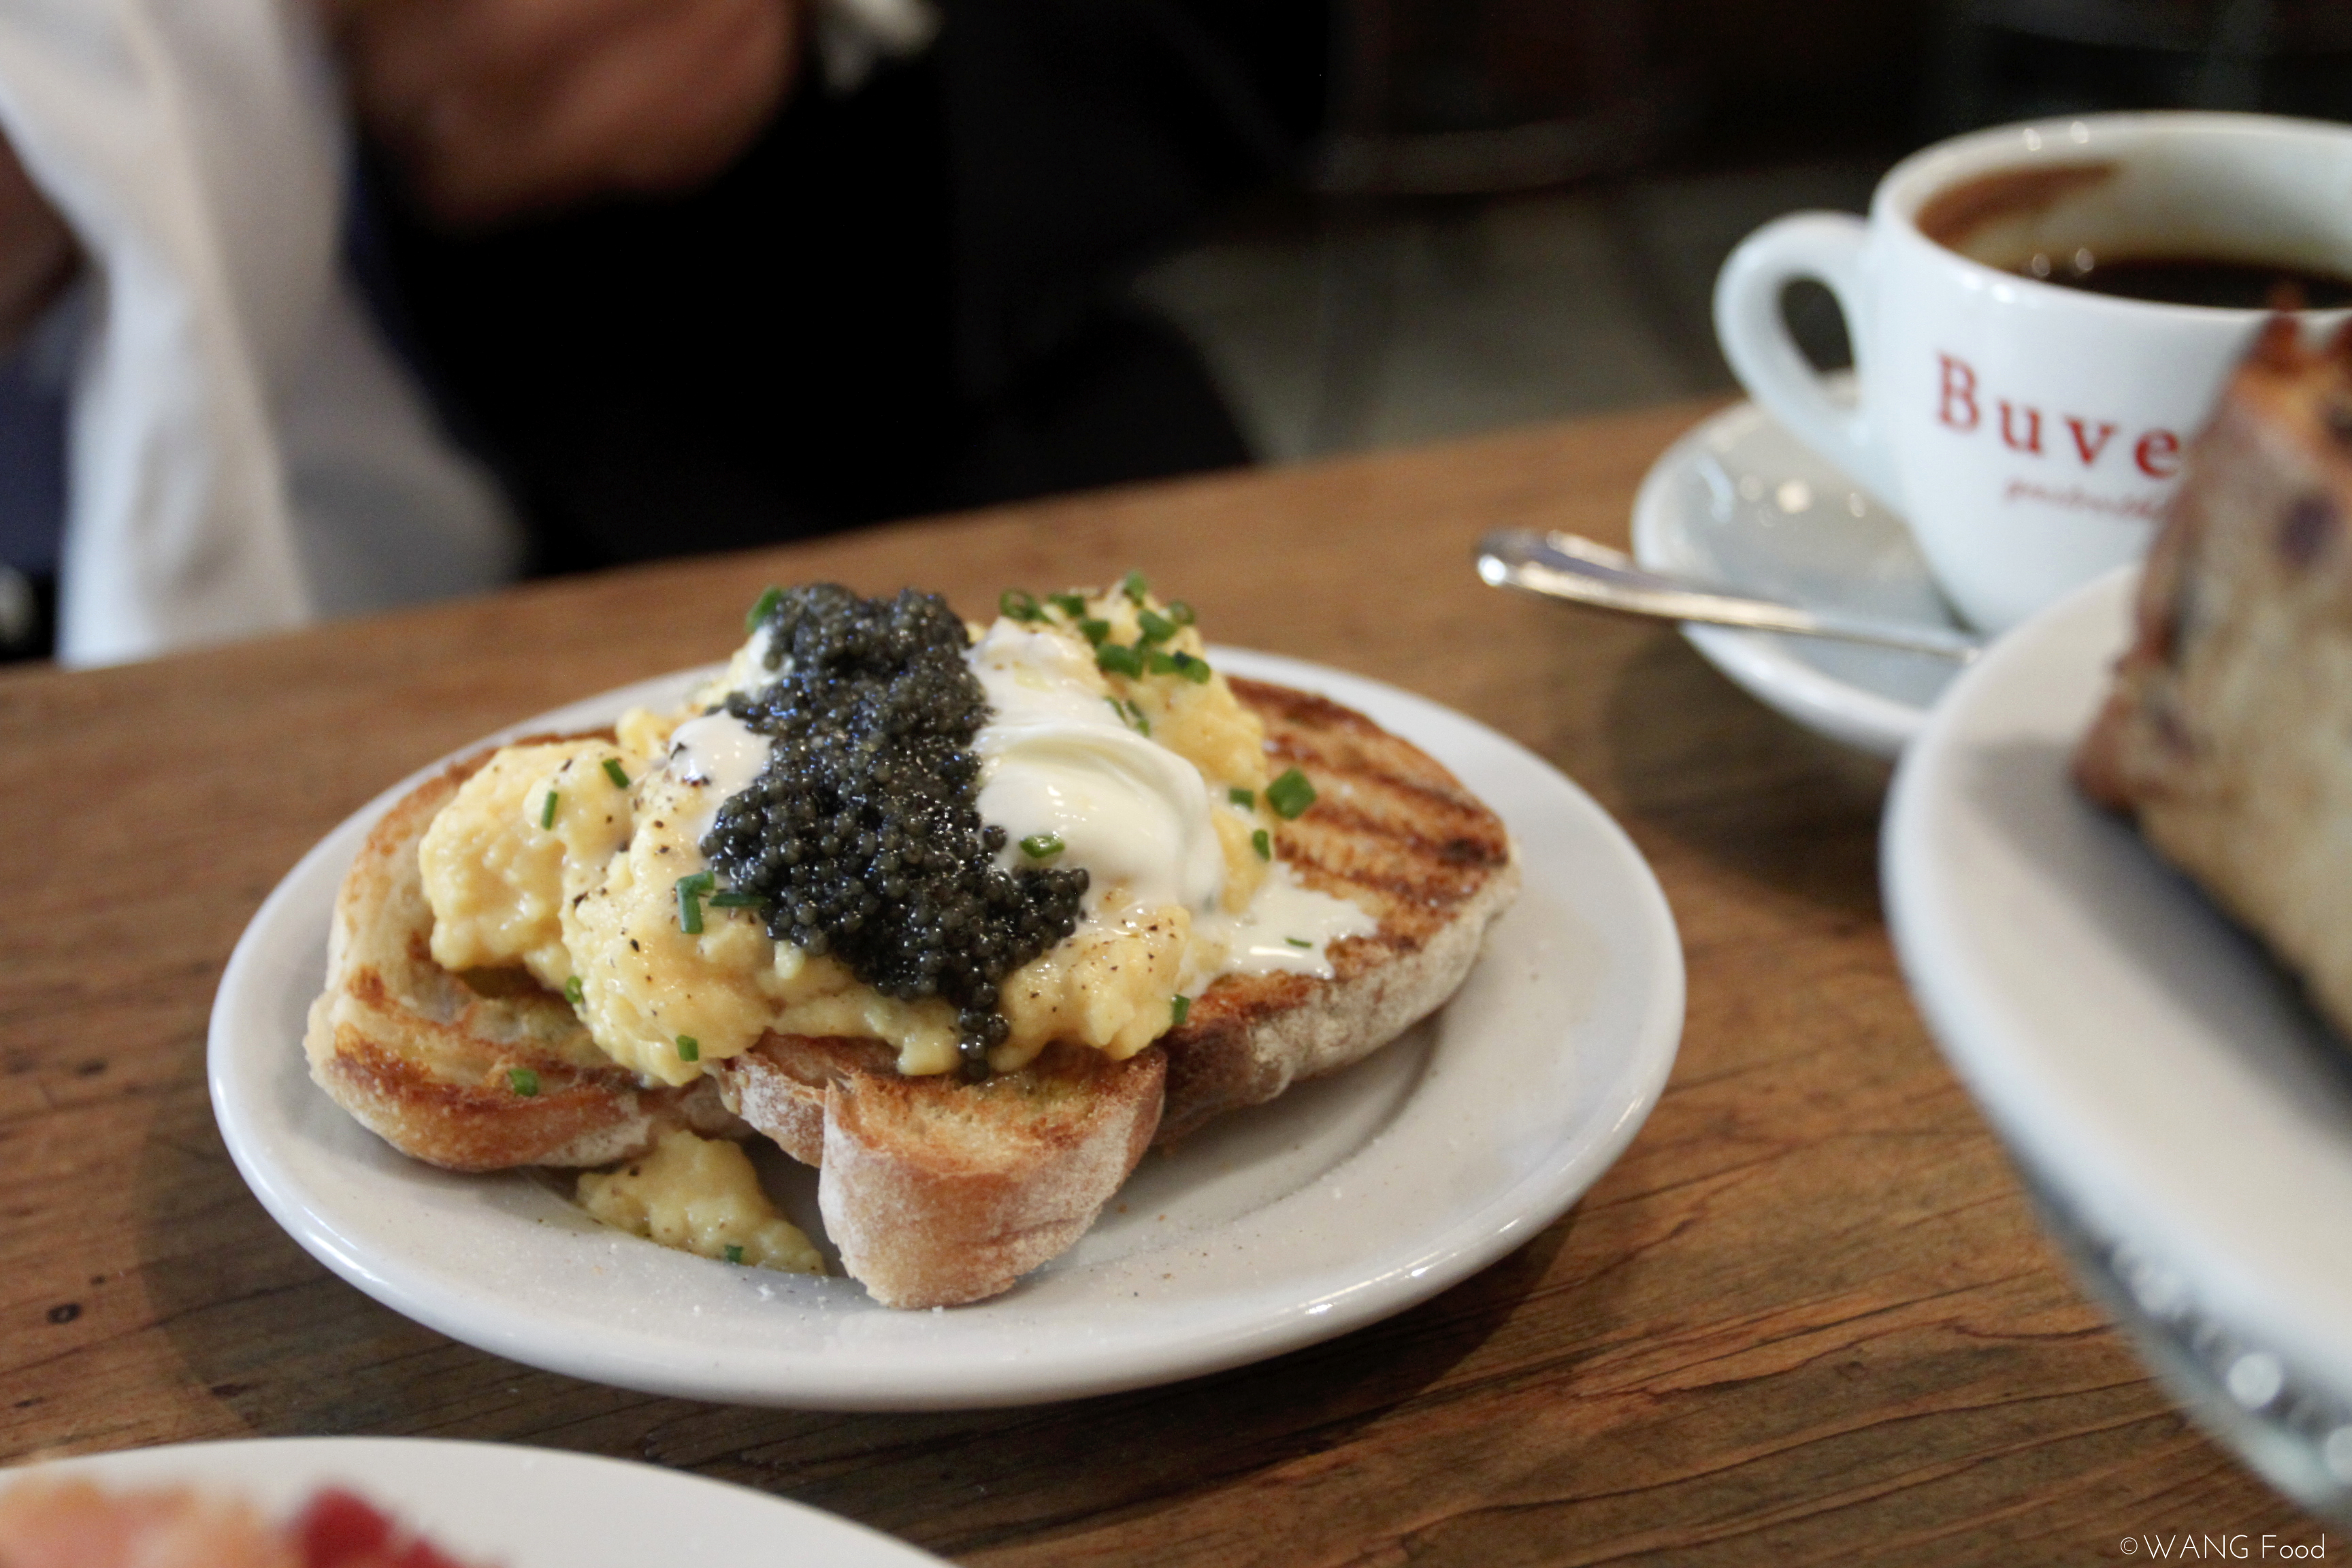 Special of the day - scrambled eggs with caviar